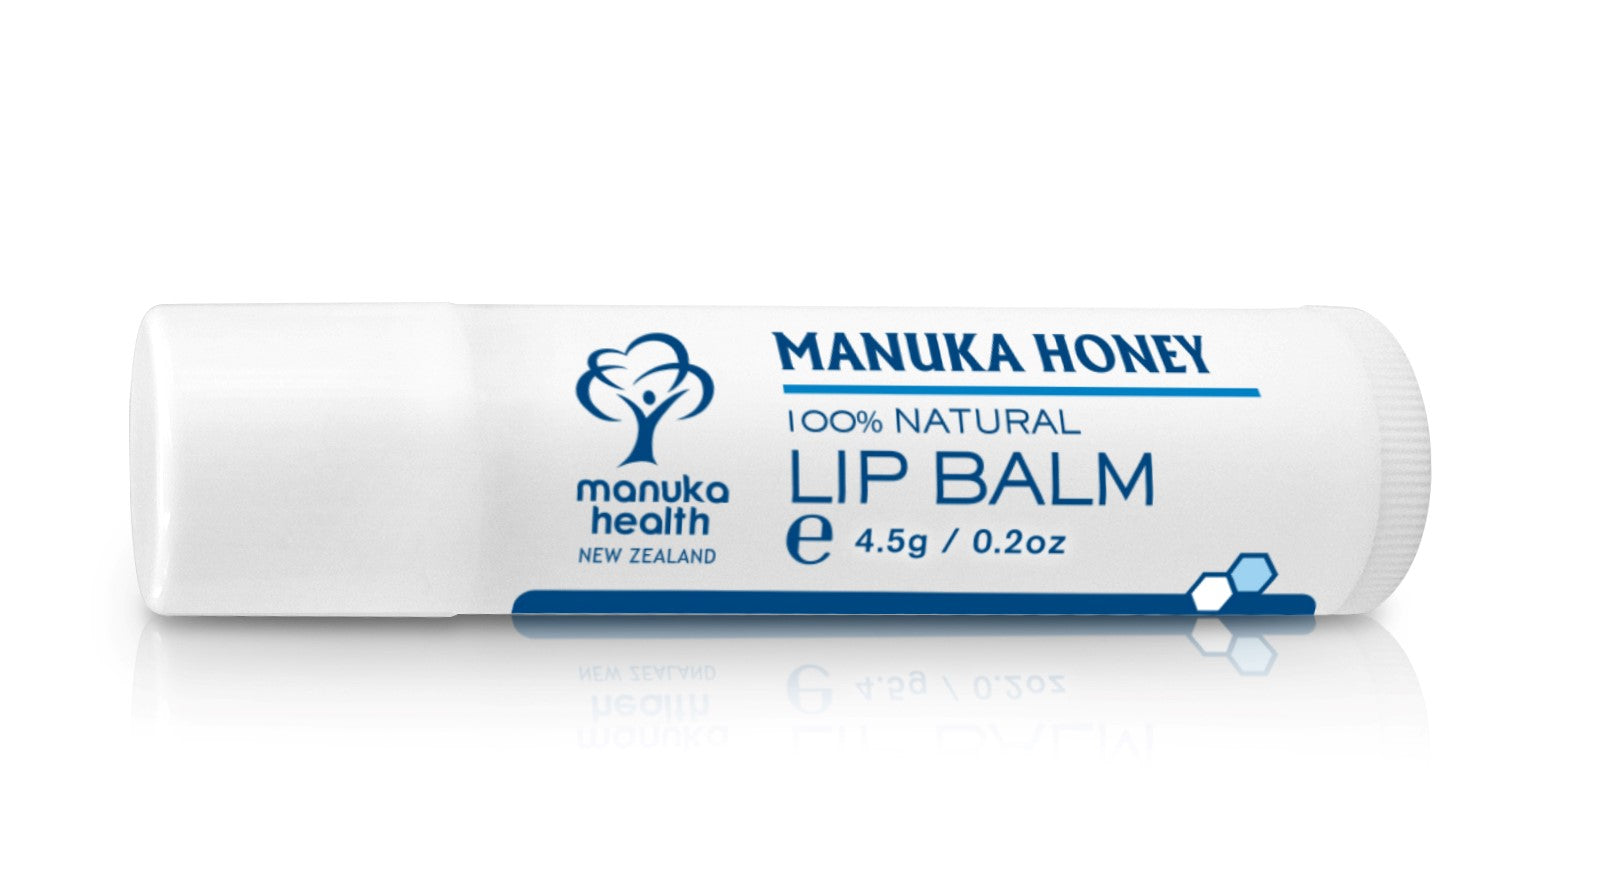 Manuka Honey Lip Balm - Face & Body | Manuka Health